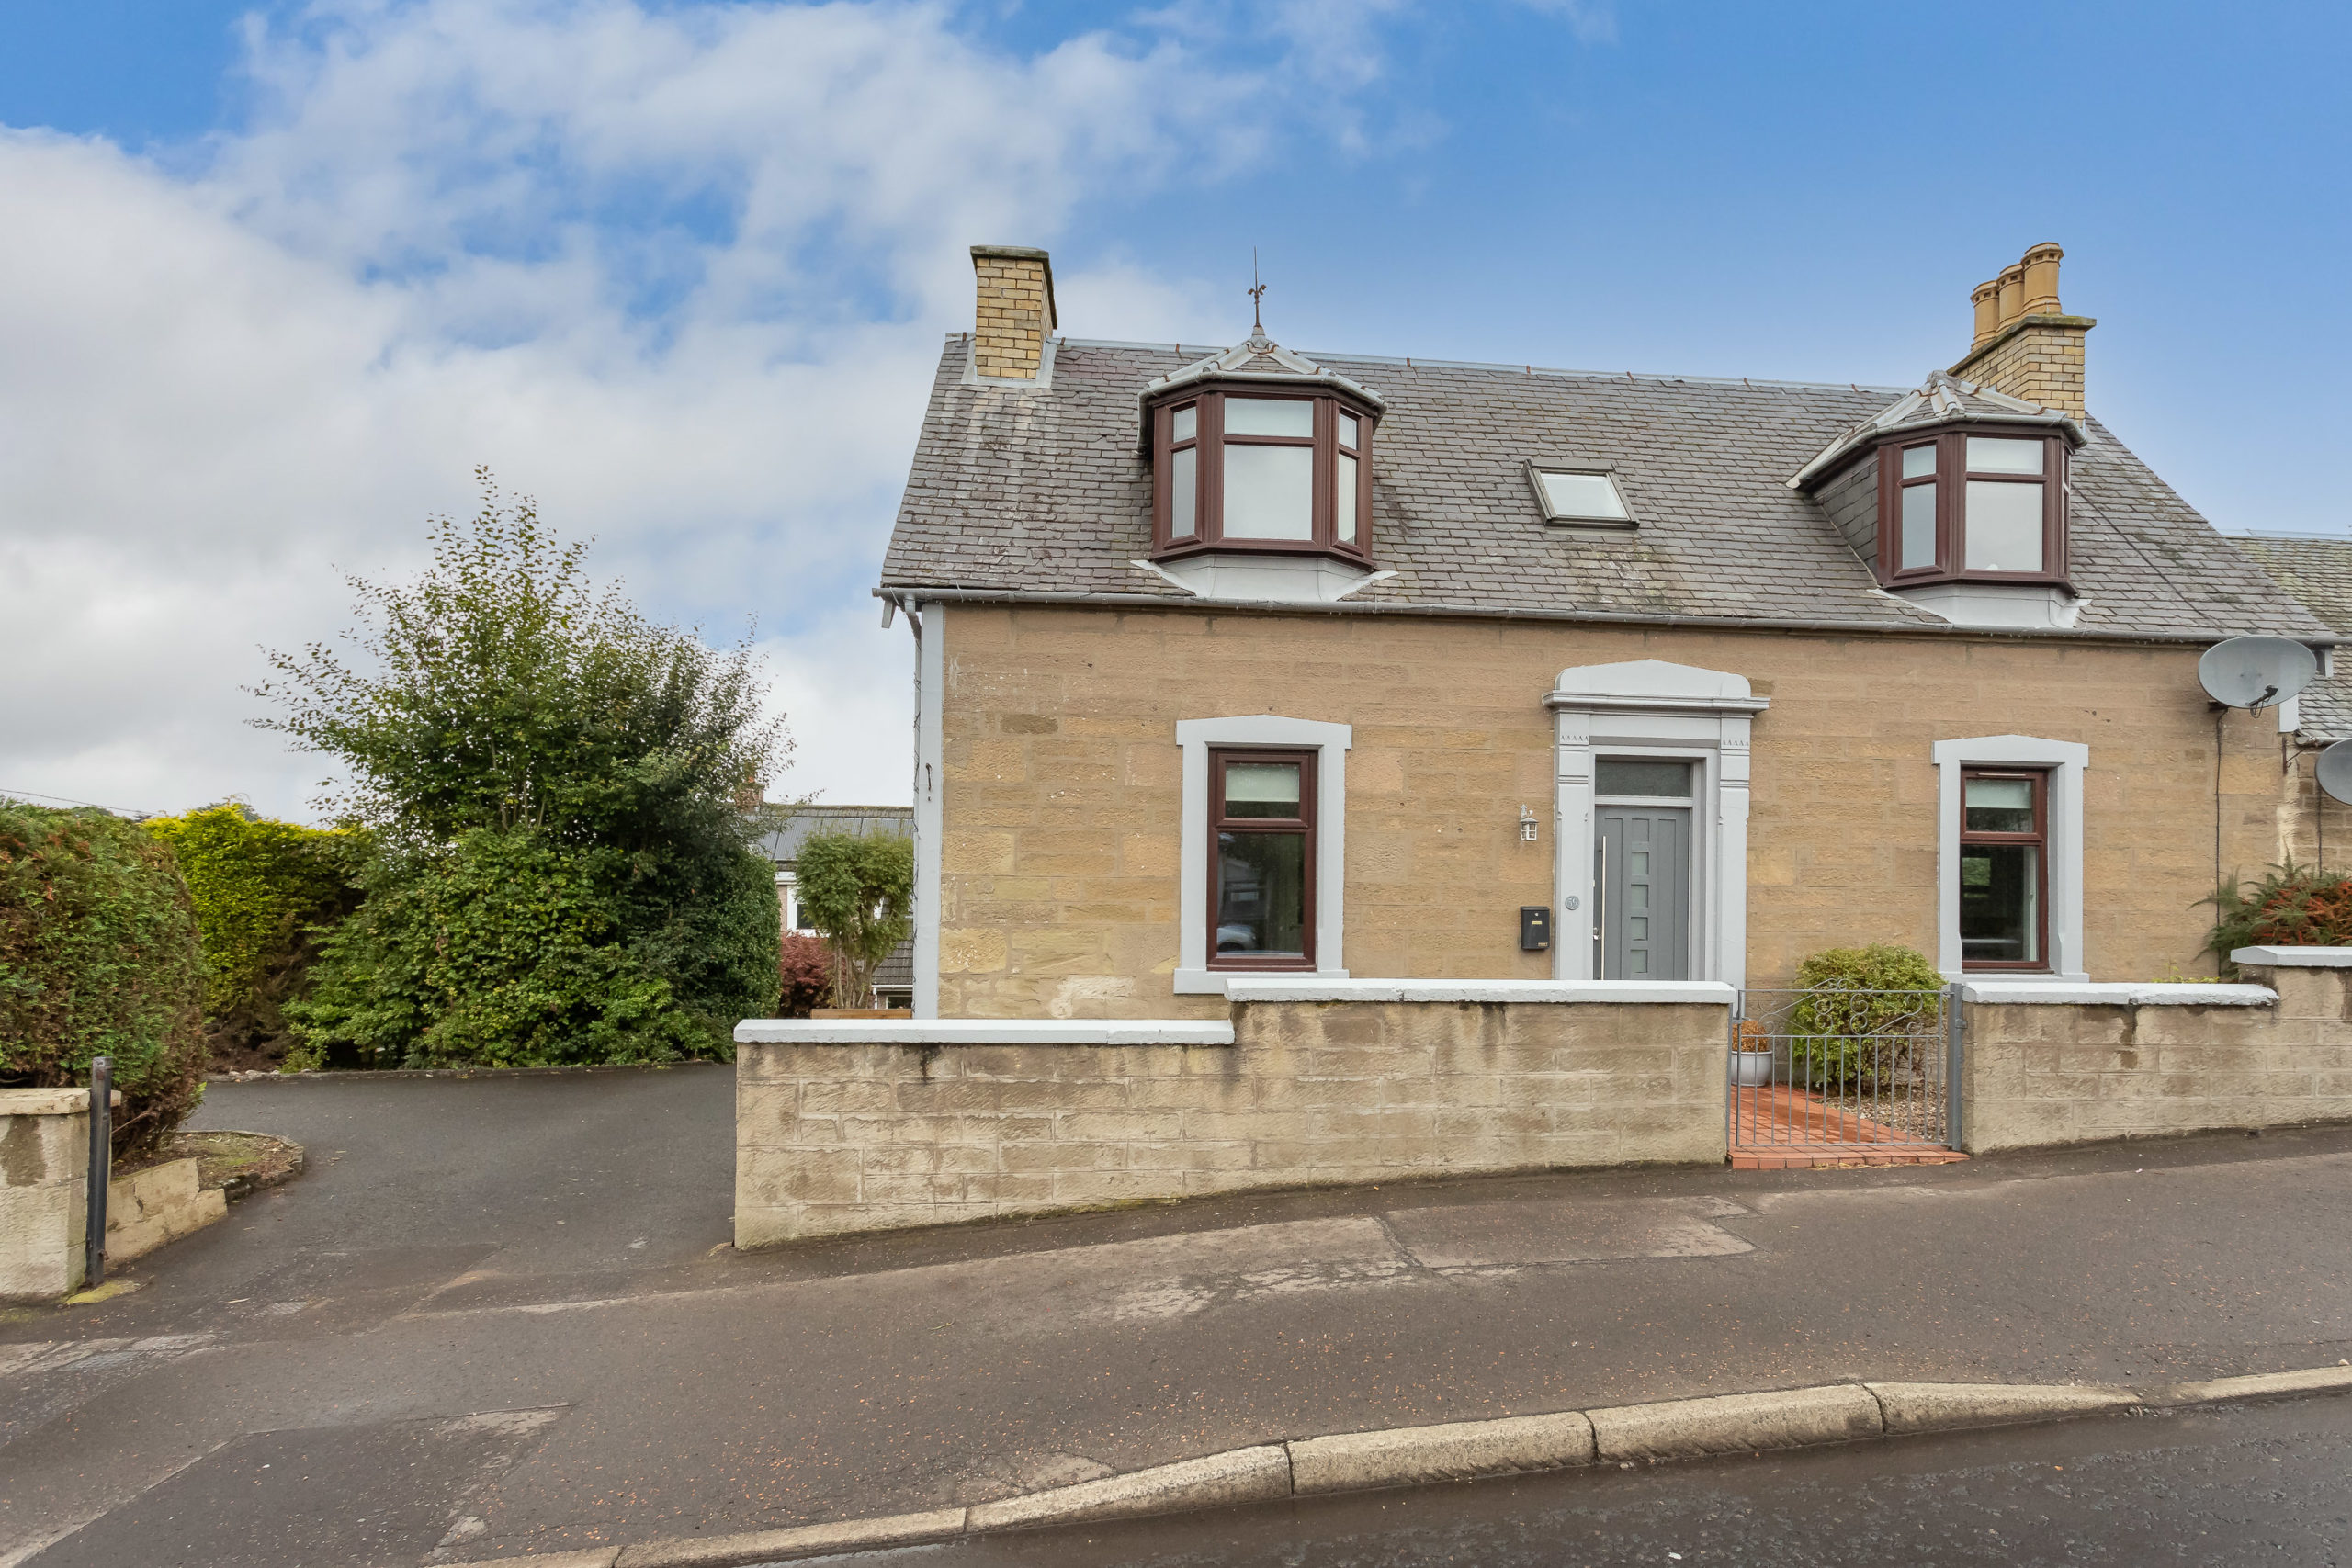 3 Bed End Terrace Cottage – 59 Angus Road, Scone